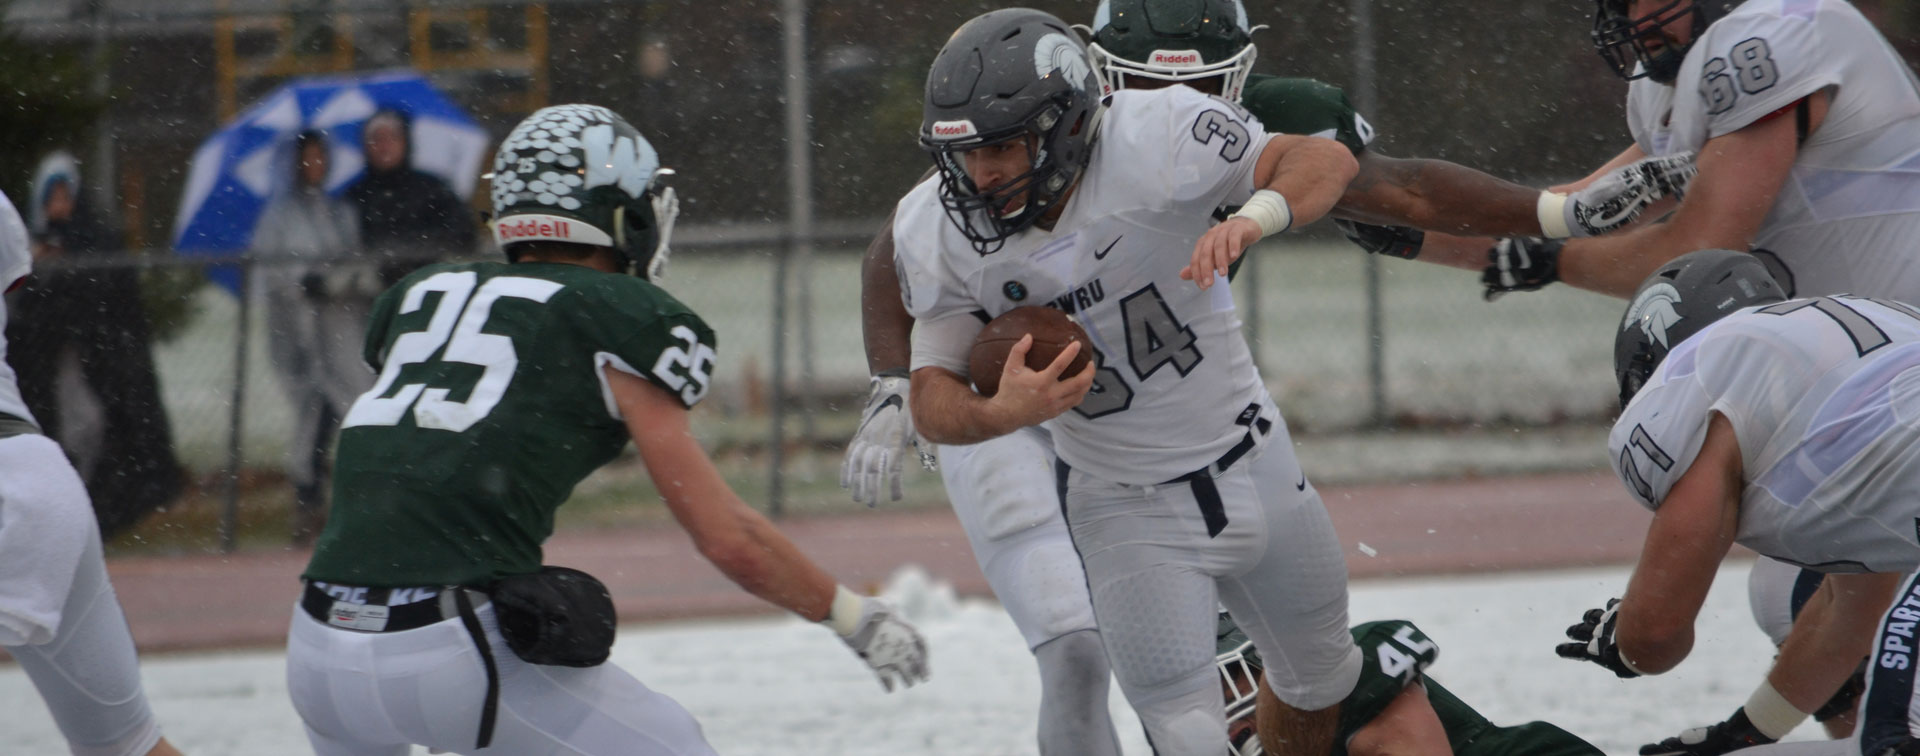 Photo of CWRU senior Aaron Aguilar breaking through a tackle